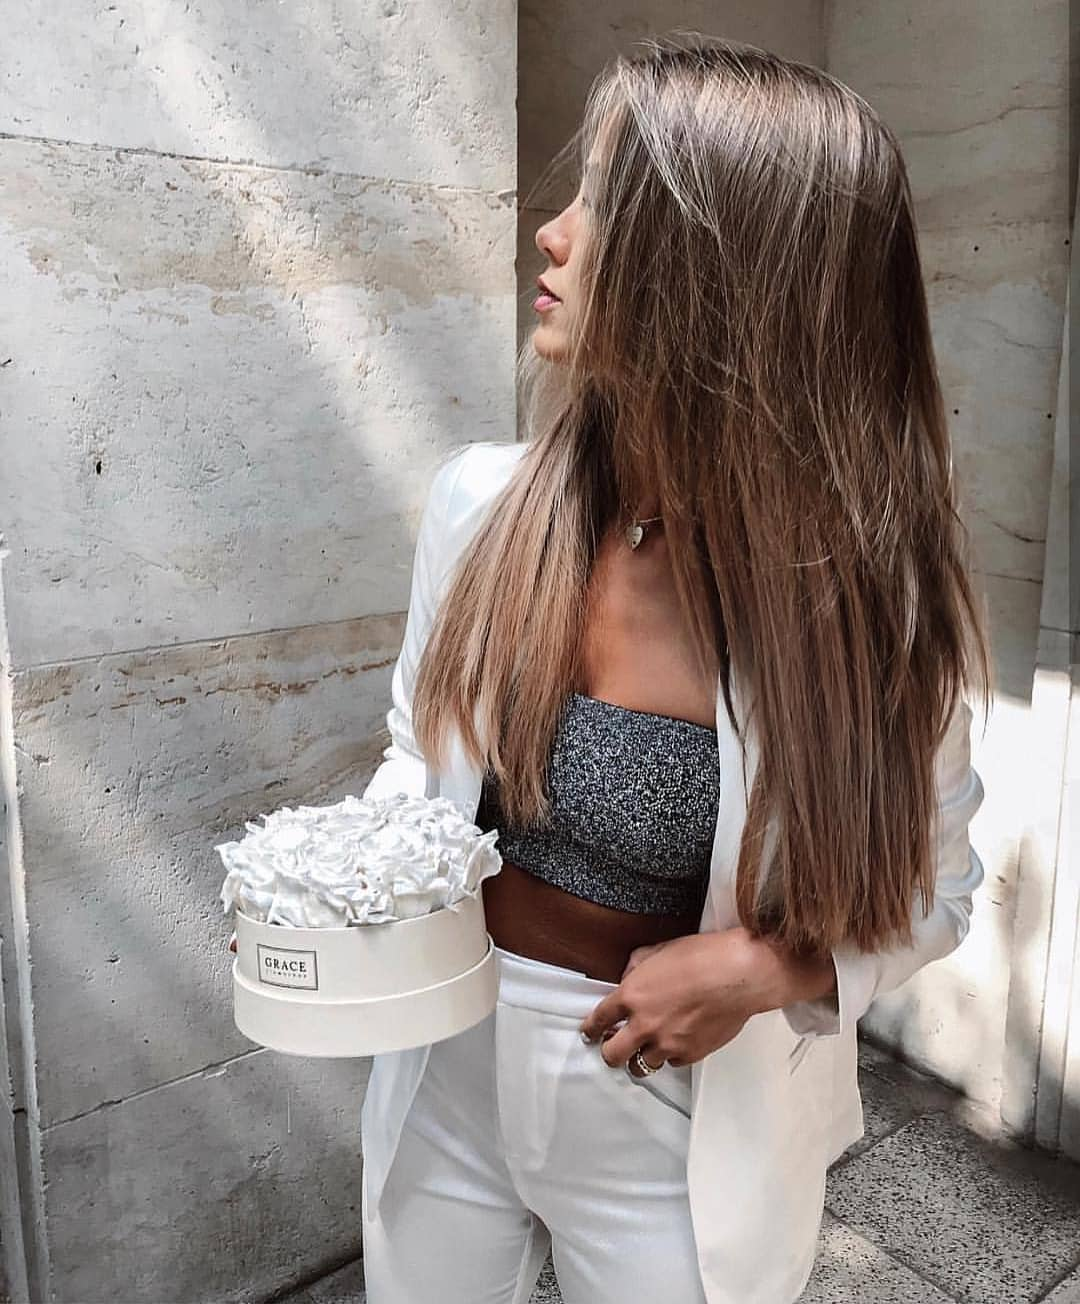 Bandeau Top And White Pantsuit For Summer 2019